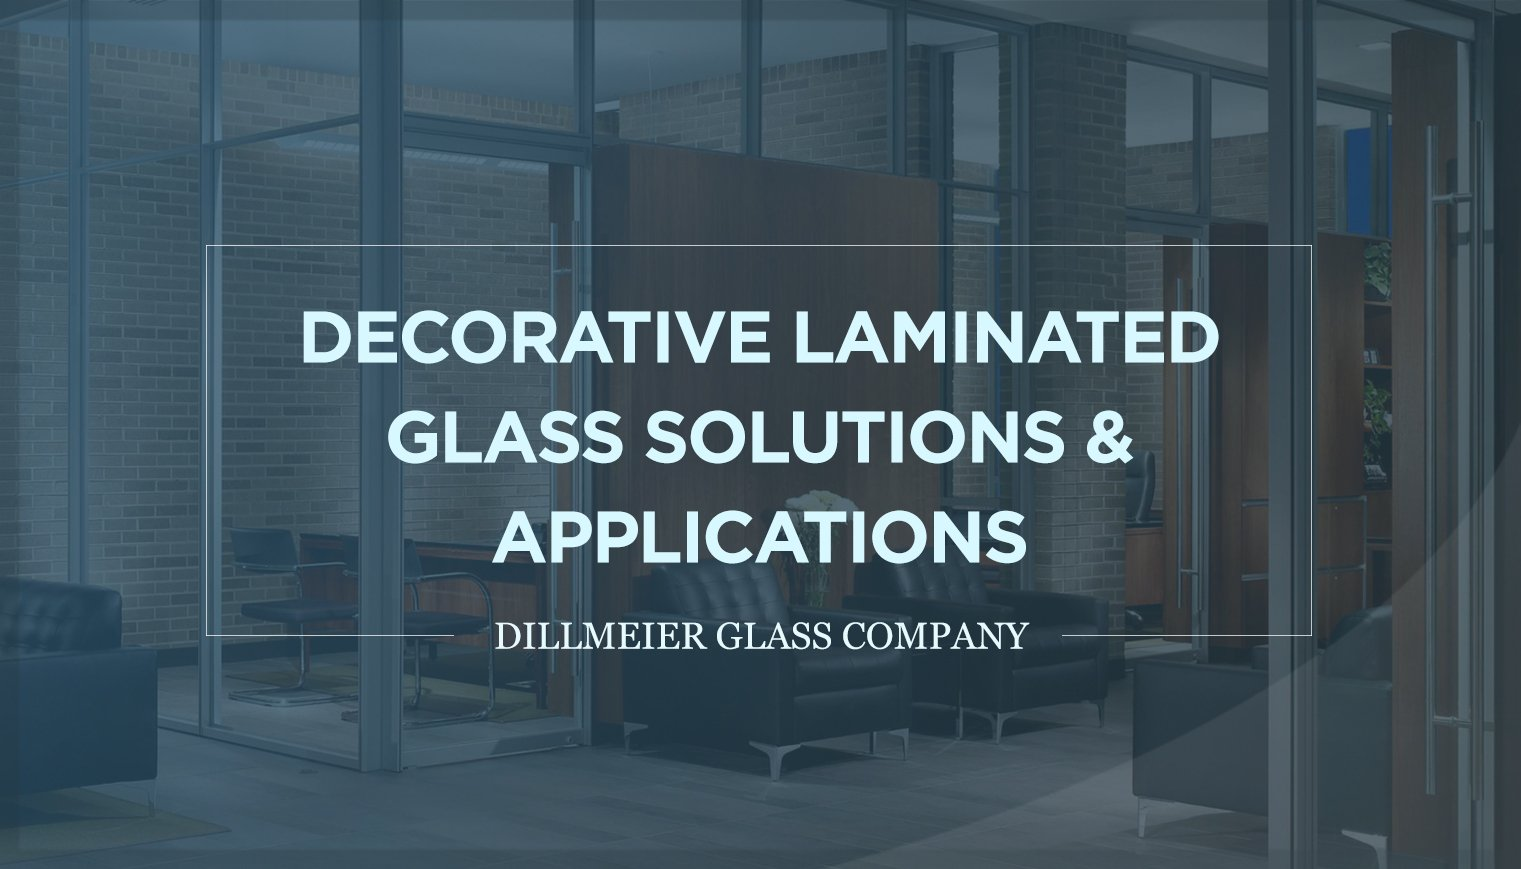 Decorative Laminated Glass Solutions & Applications